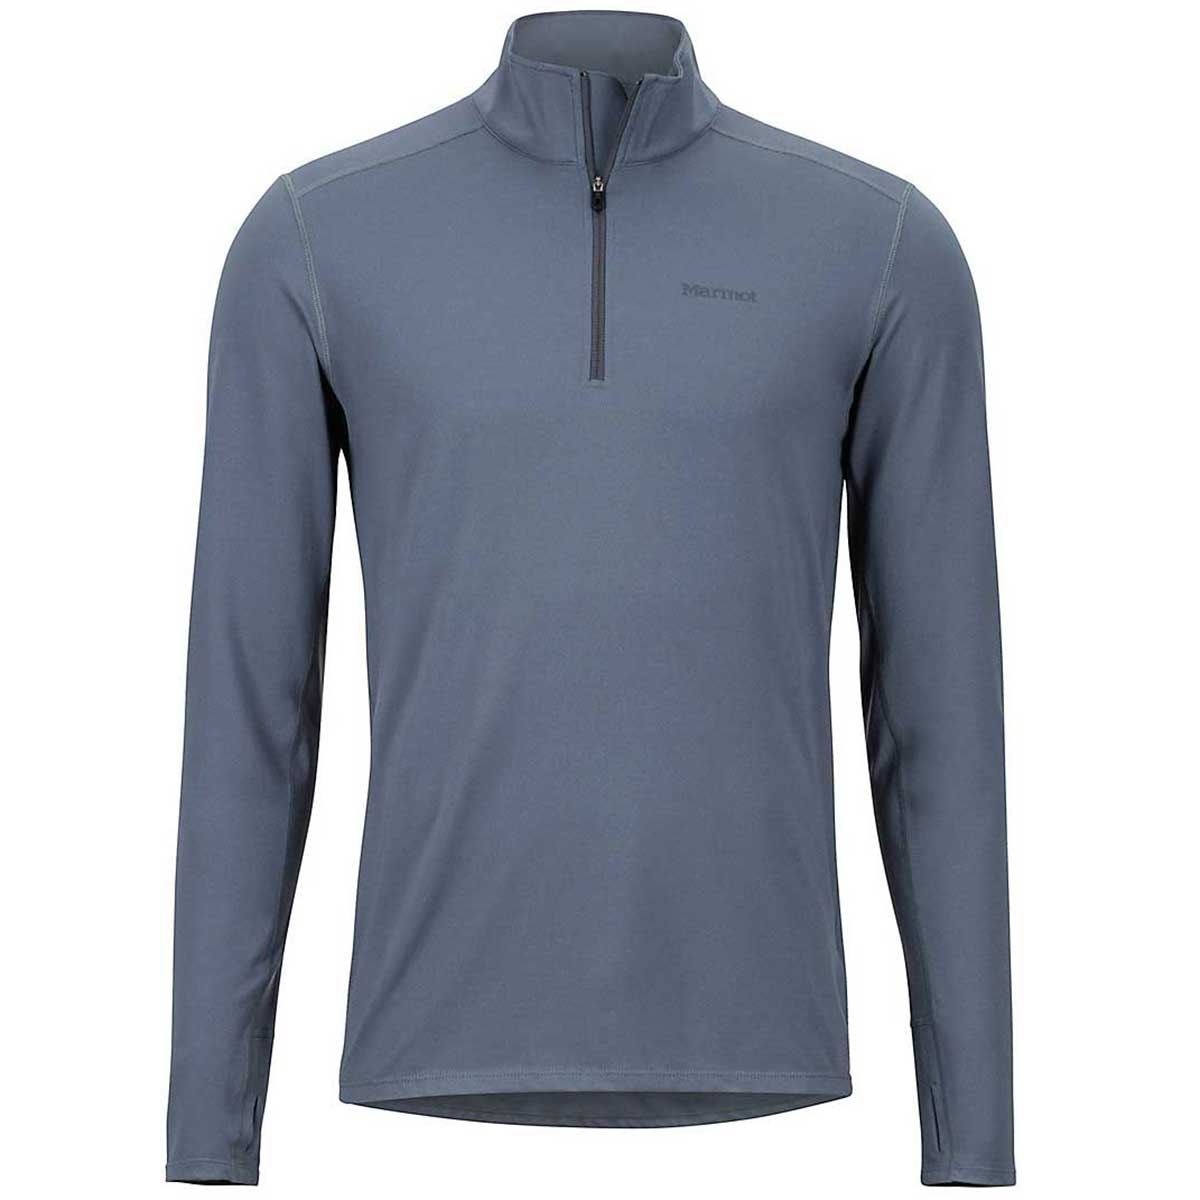 Marmot Men's Midweight Harrier 1/2 Zip Top in Steel Onyx